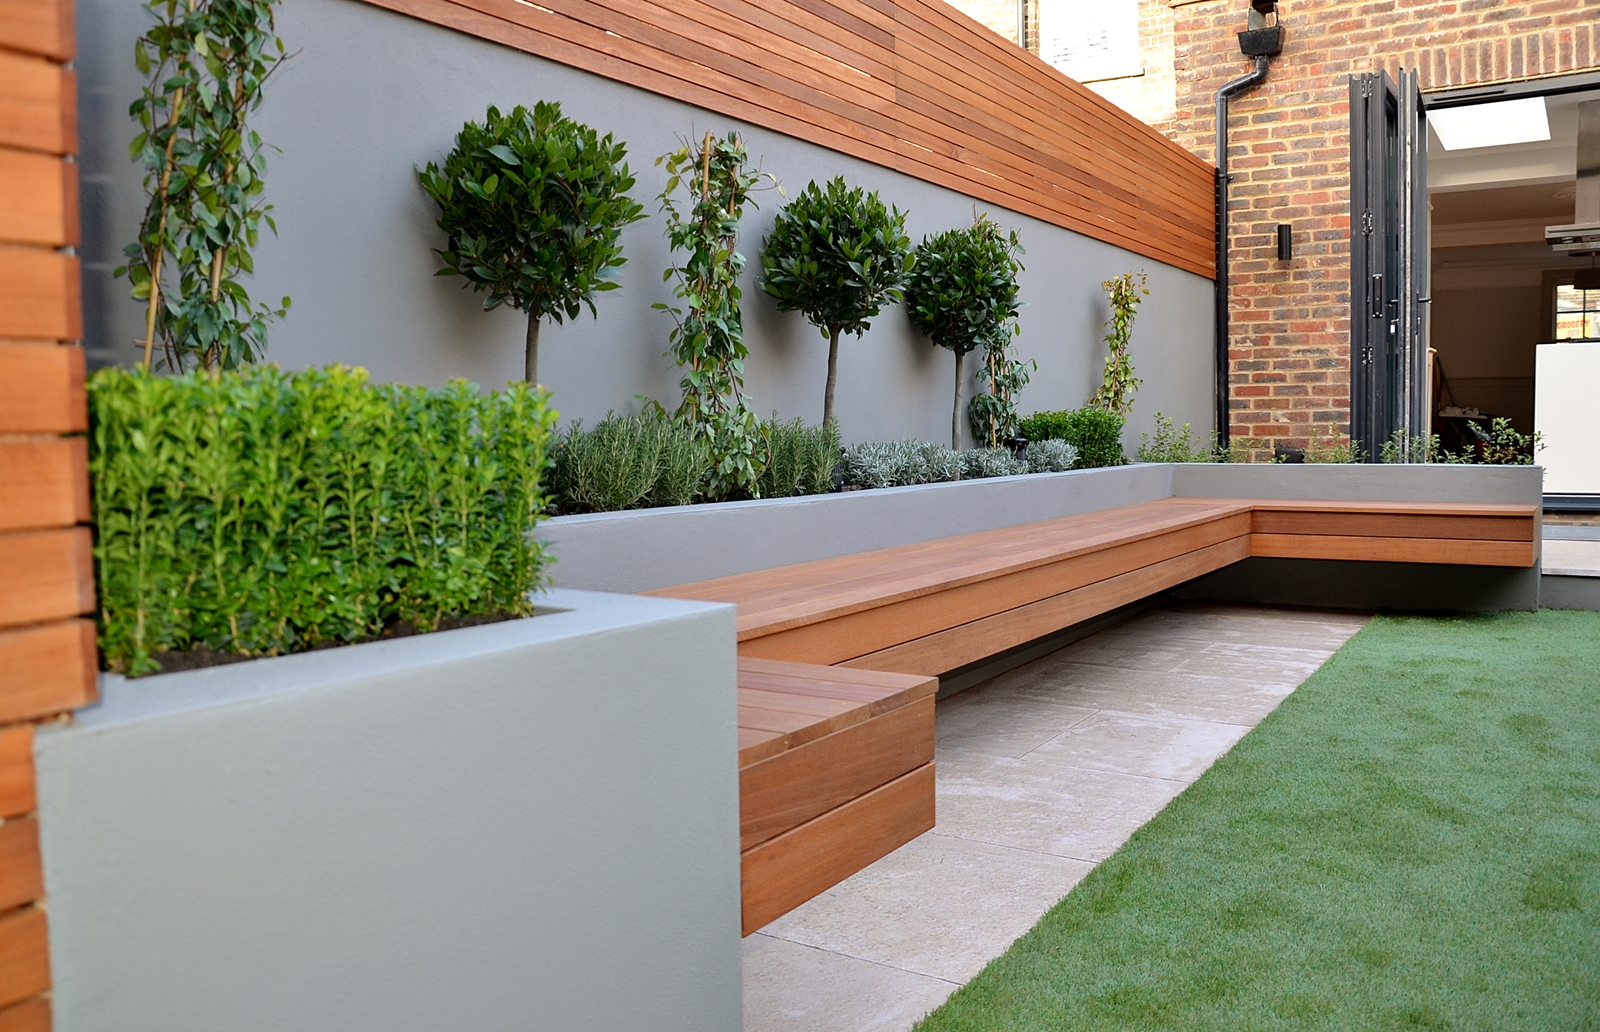 Modern garden design ideas great lighting fireplace hardwood screen plastered rendered walls - Garden ideas london ...